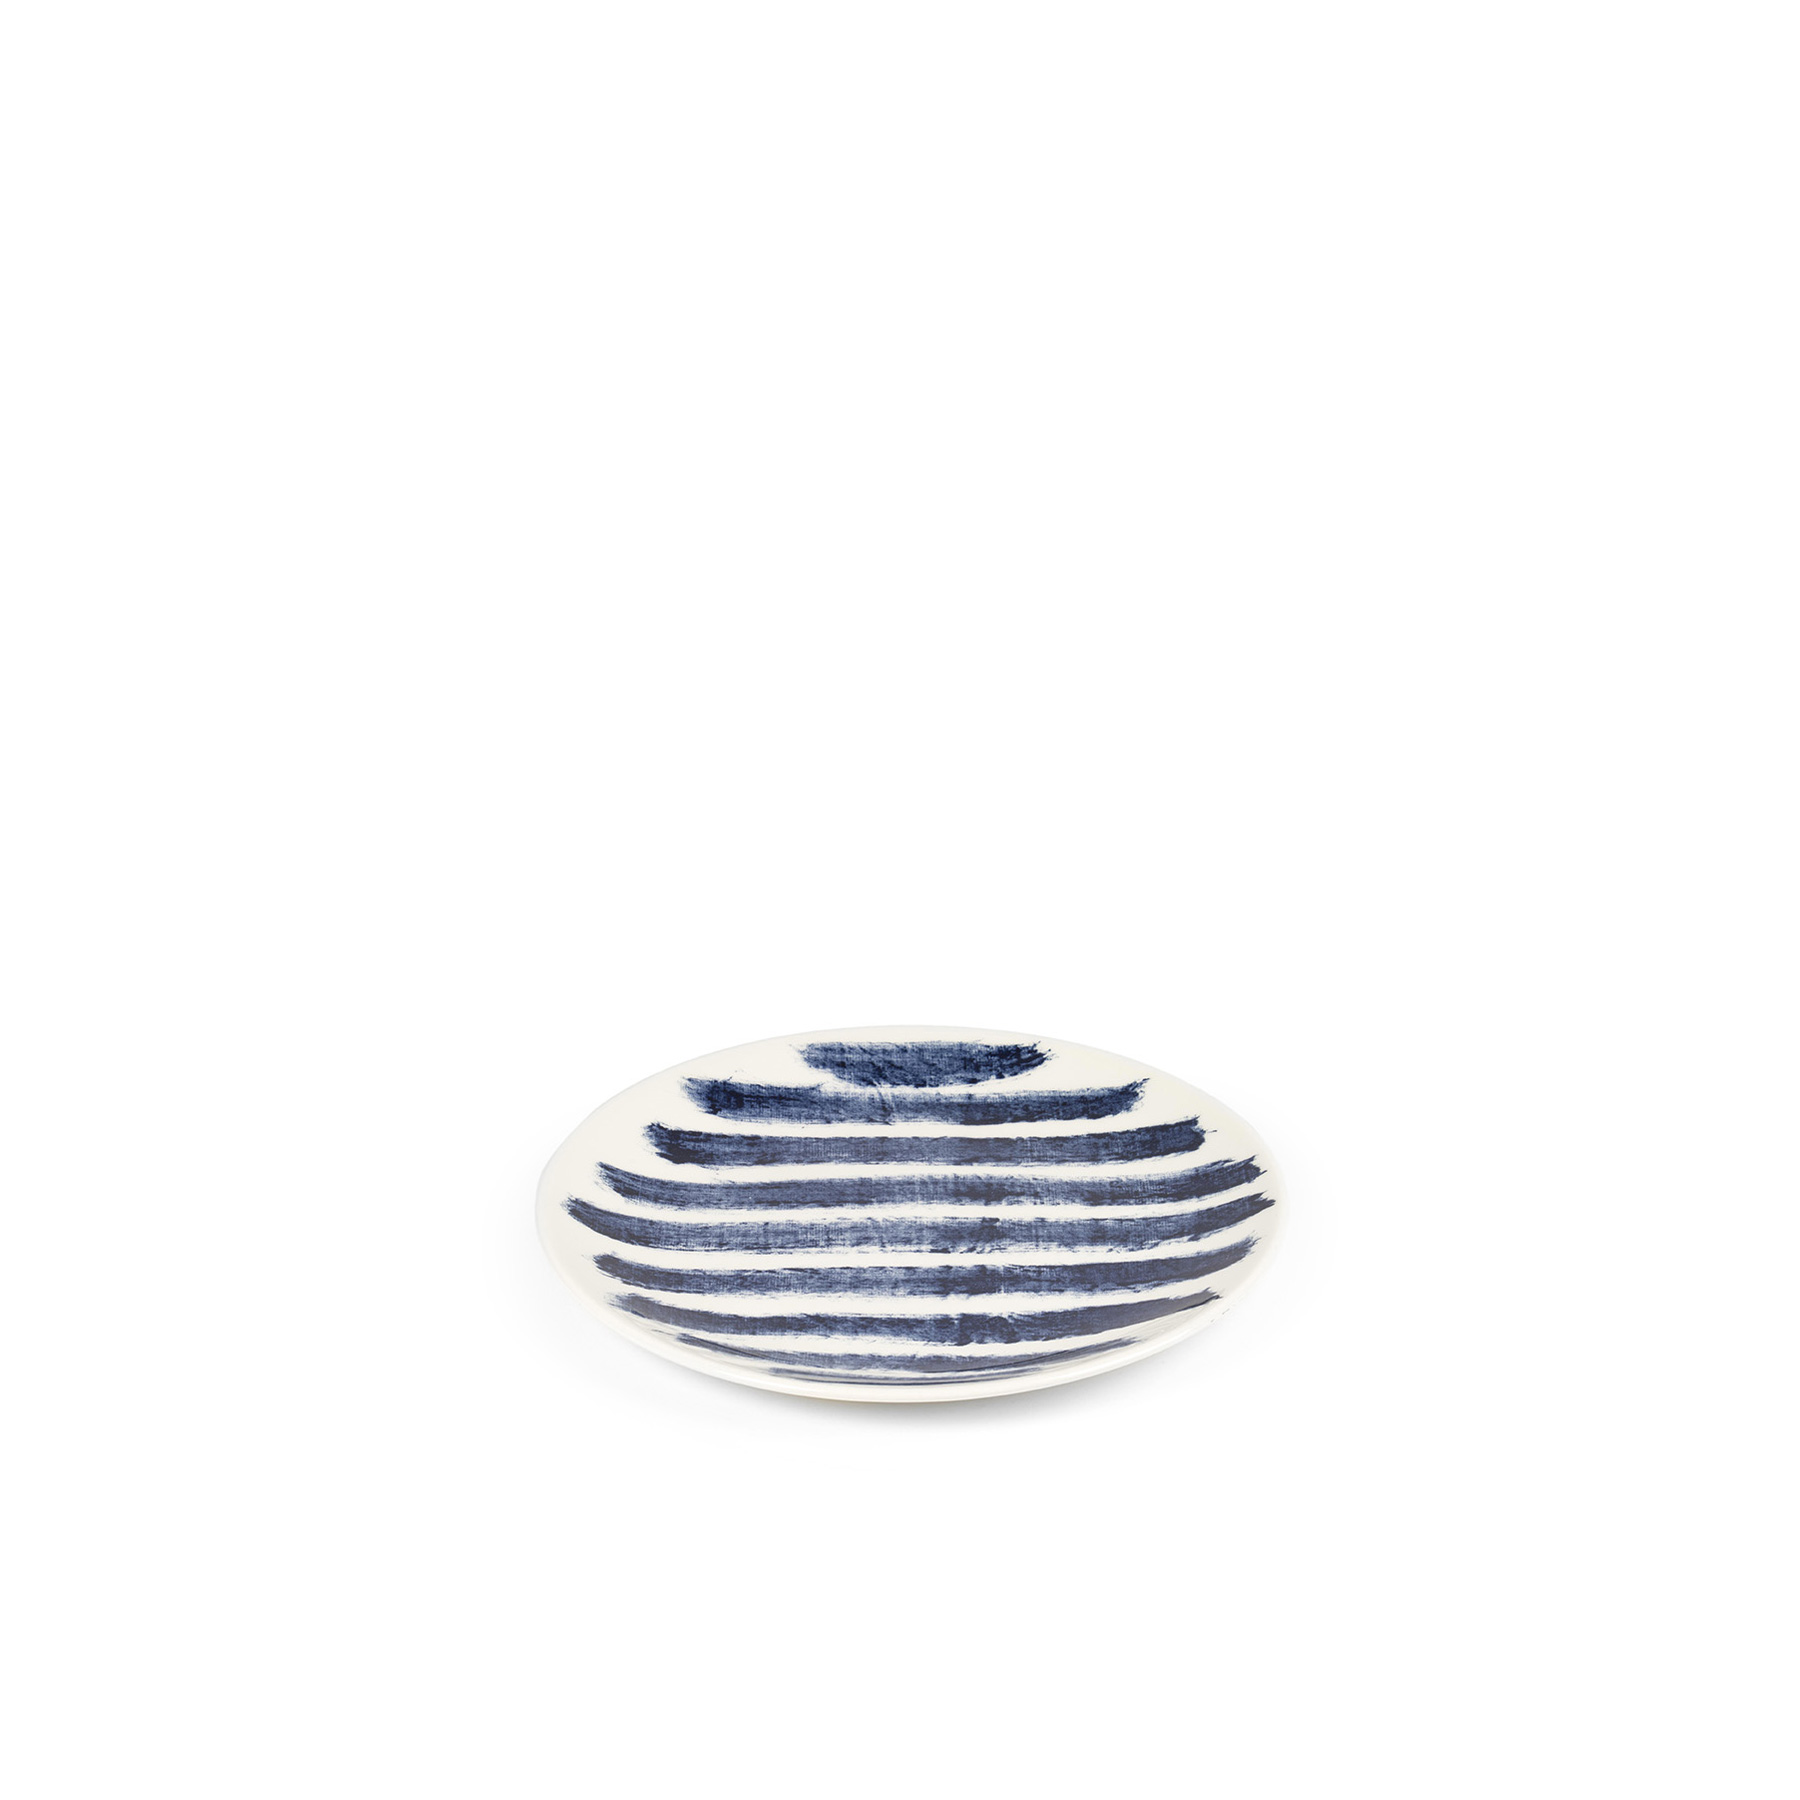 Indigo Rain Salad Plate - Faye Toogood's addition to her range of ceramic designs for 1882 Ltd. puts a fresh spin on the forms and traditions of English creamware. Indigo Rain reinterprets the homely familiarity of blue-and-white striped crockery in a new design informed by the spirit of serendipitous discovery. Representing a streamlined take on our ceramic heritage, the fine earthenware employs the familiar tones of English Delftware: cream offset with a rich, deep blue. Broad bands of indigo glaze, like painterly washes of watercolour, are applied to rough canvas and then transferred to the pieces – the characteristic grain of the fabric imbues the delicate ceramics with the hardworking spirit of dark-dyed denim.  | Matter of Stuff